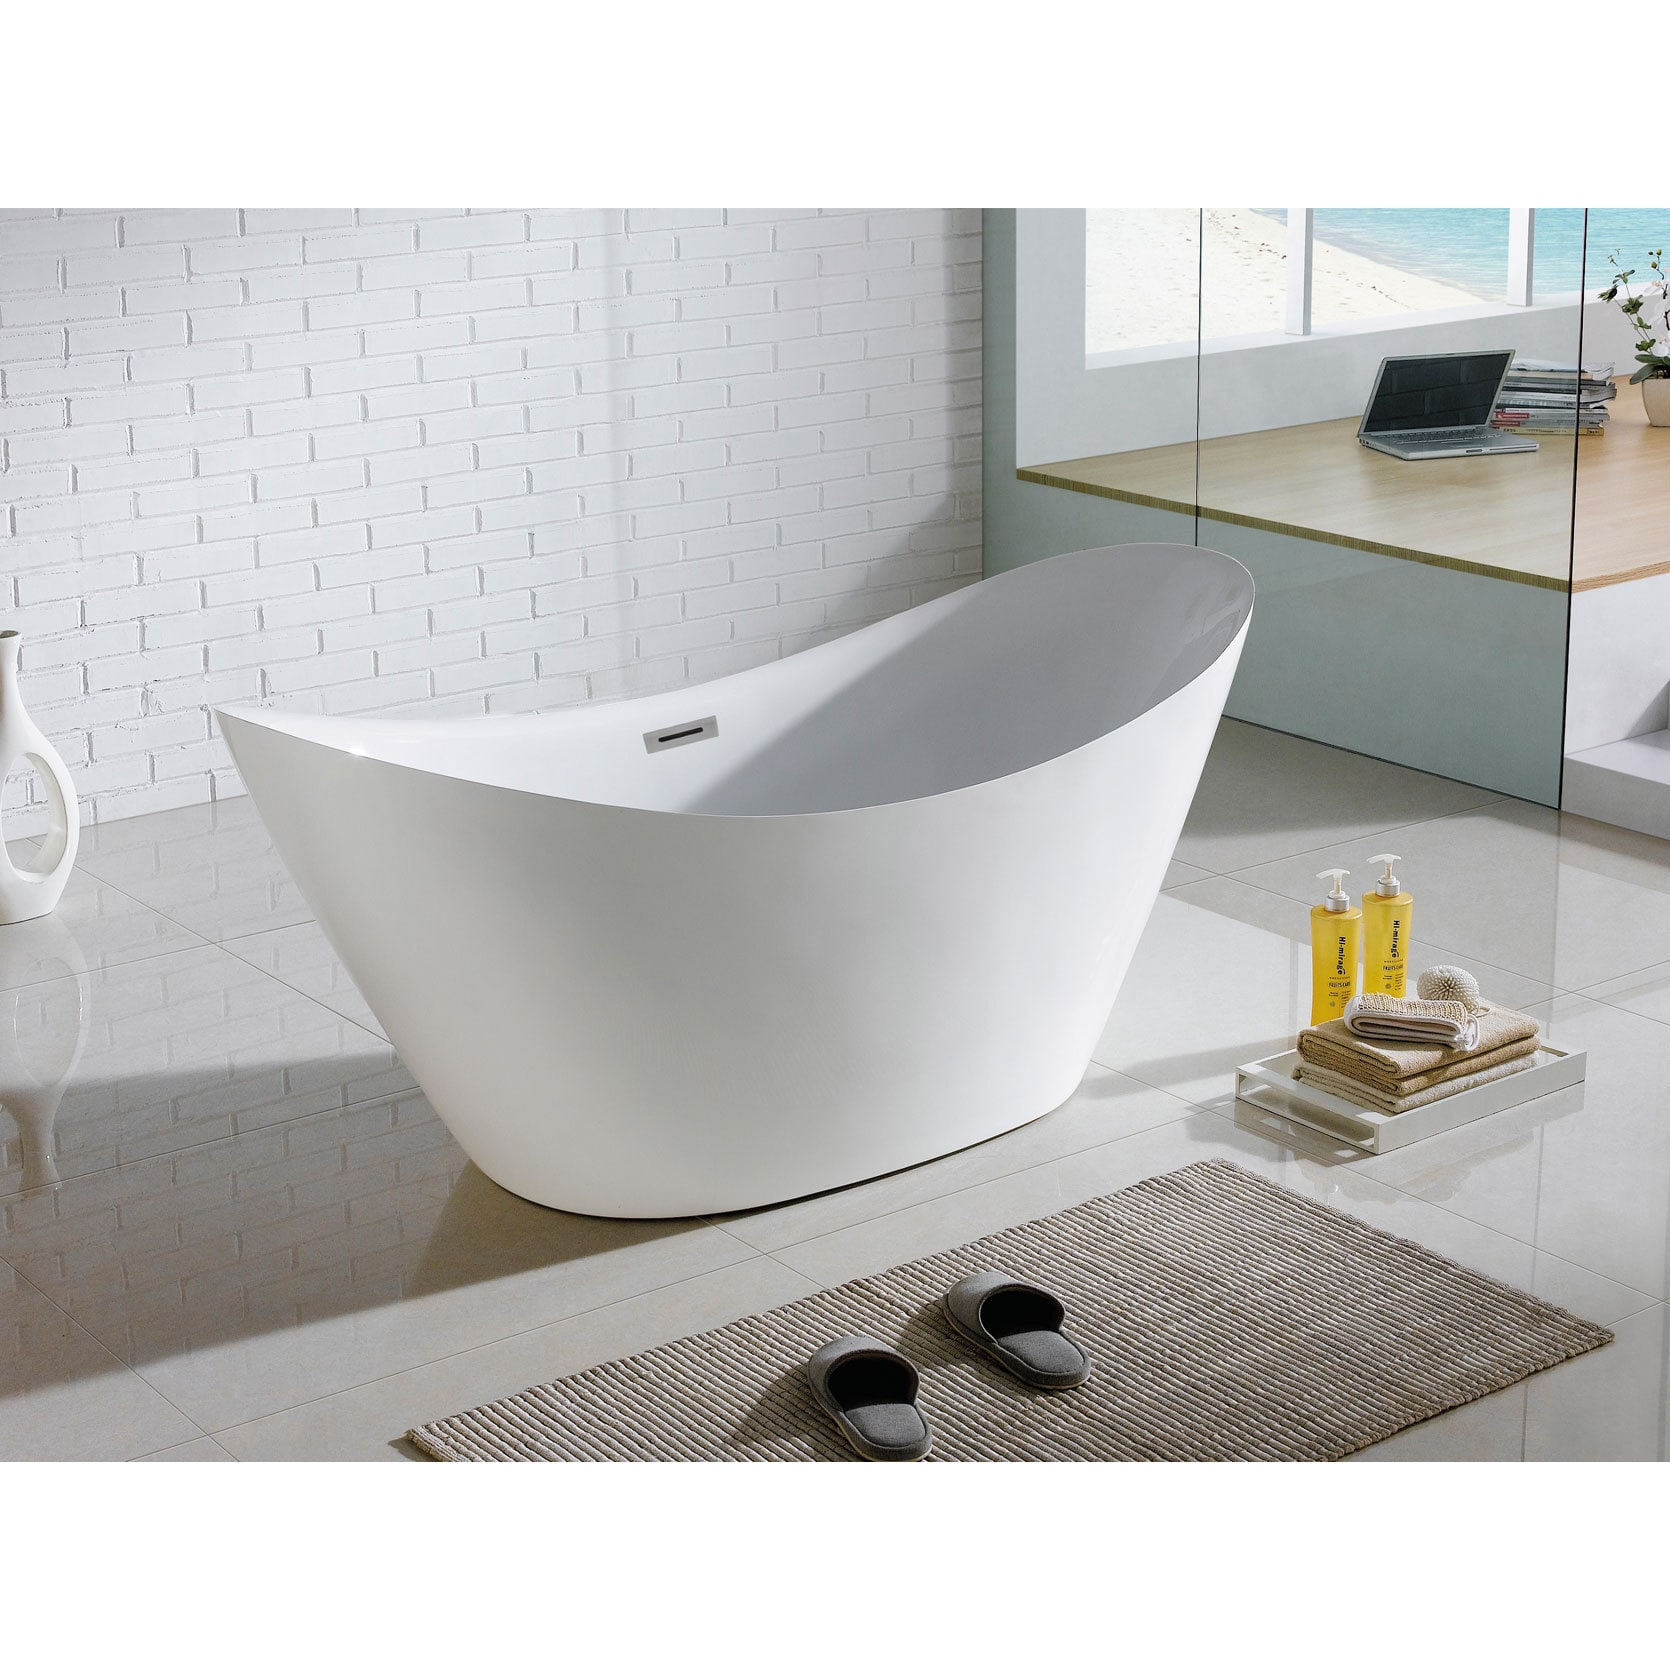 Riviera 67 Inch X 28 Inch White Oval Soaking Bathtub   Free Shipping Today    Overstock   18569766